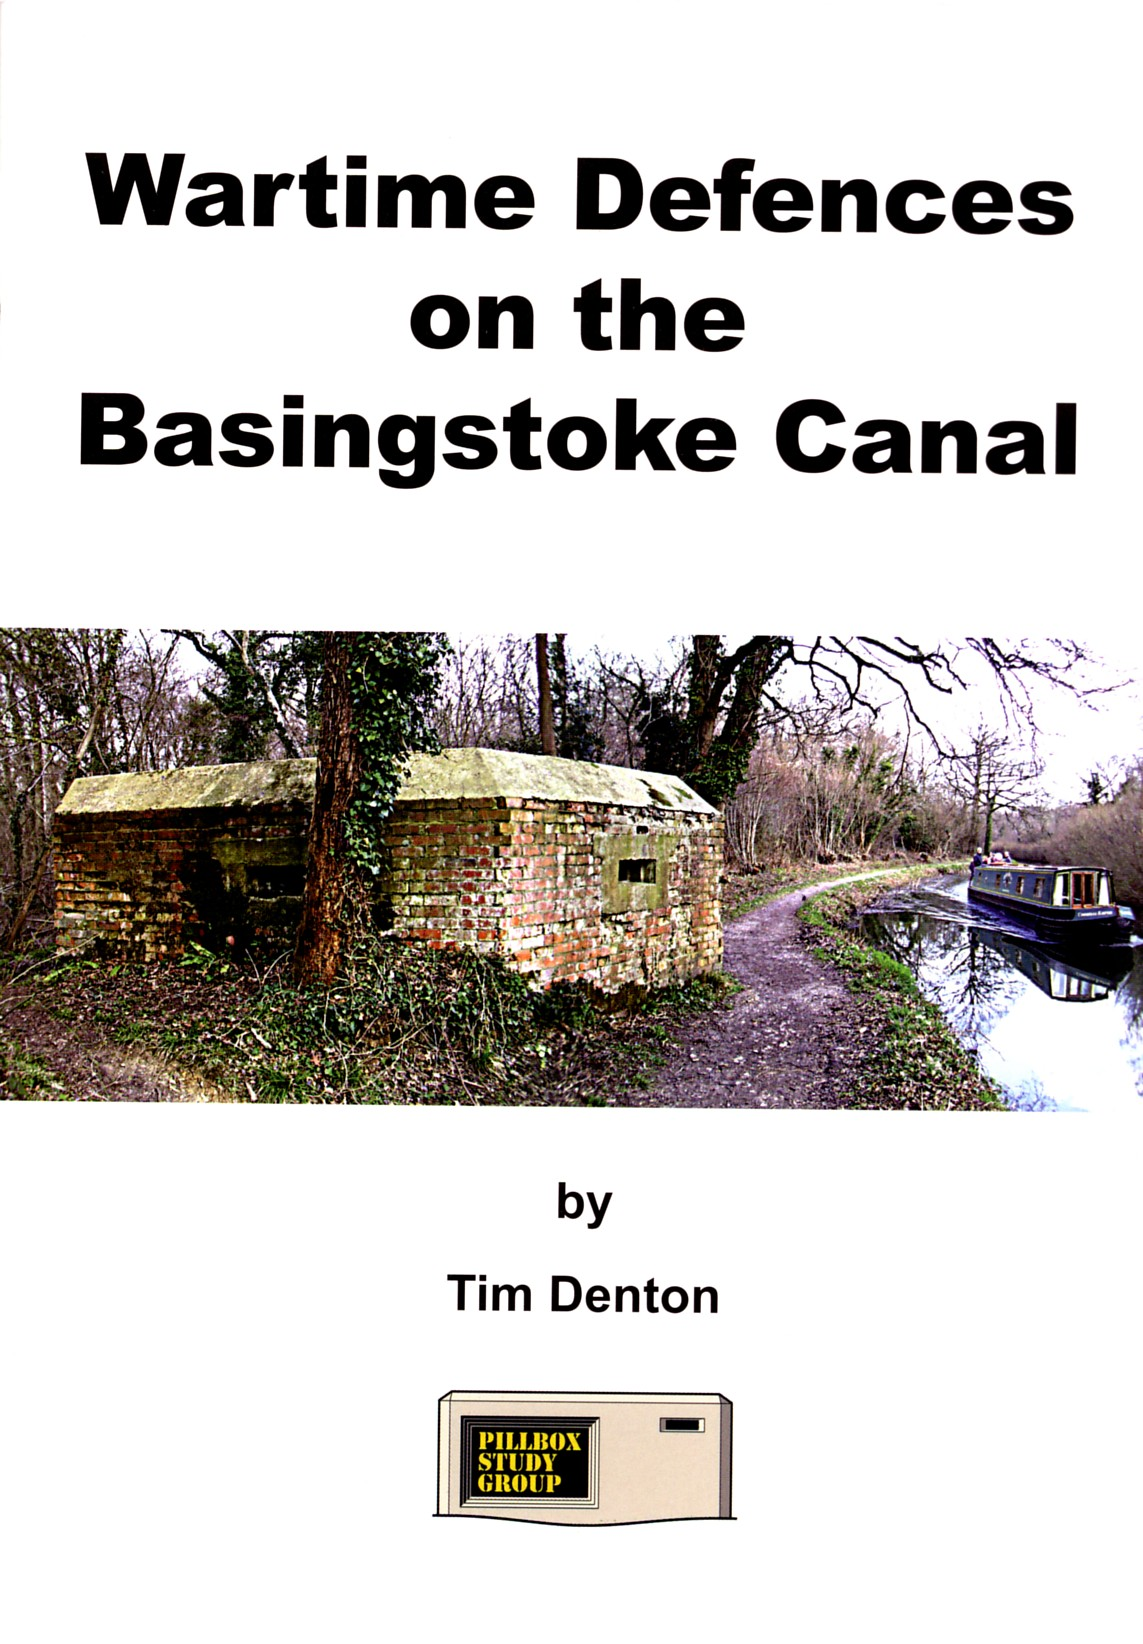 Wartime Defences On The Basingstoke Canal